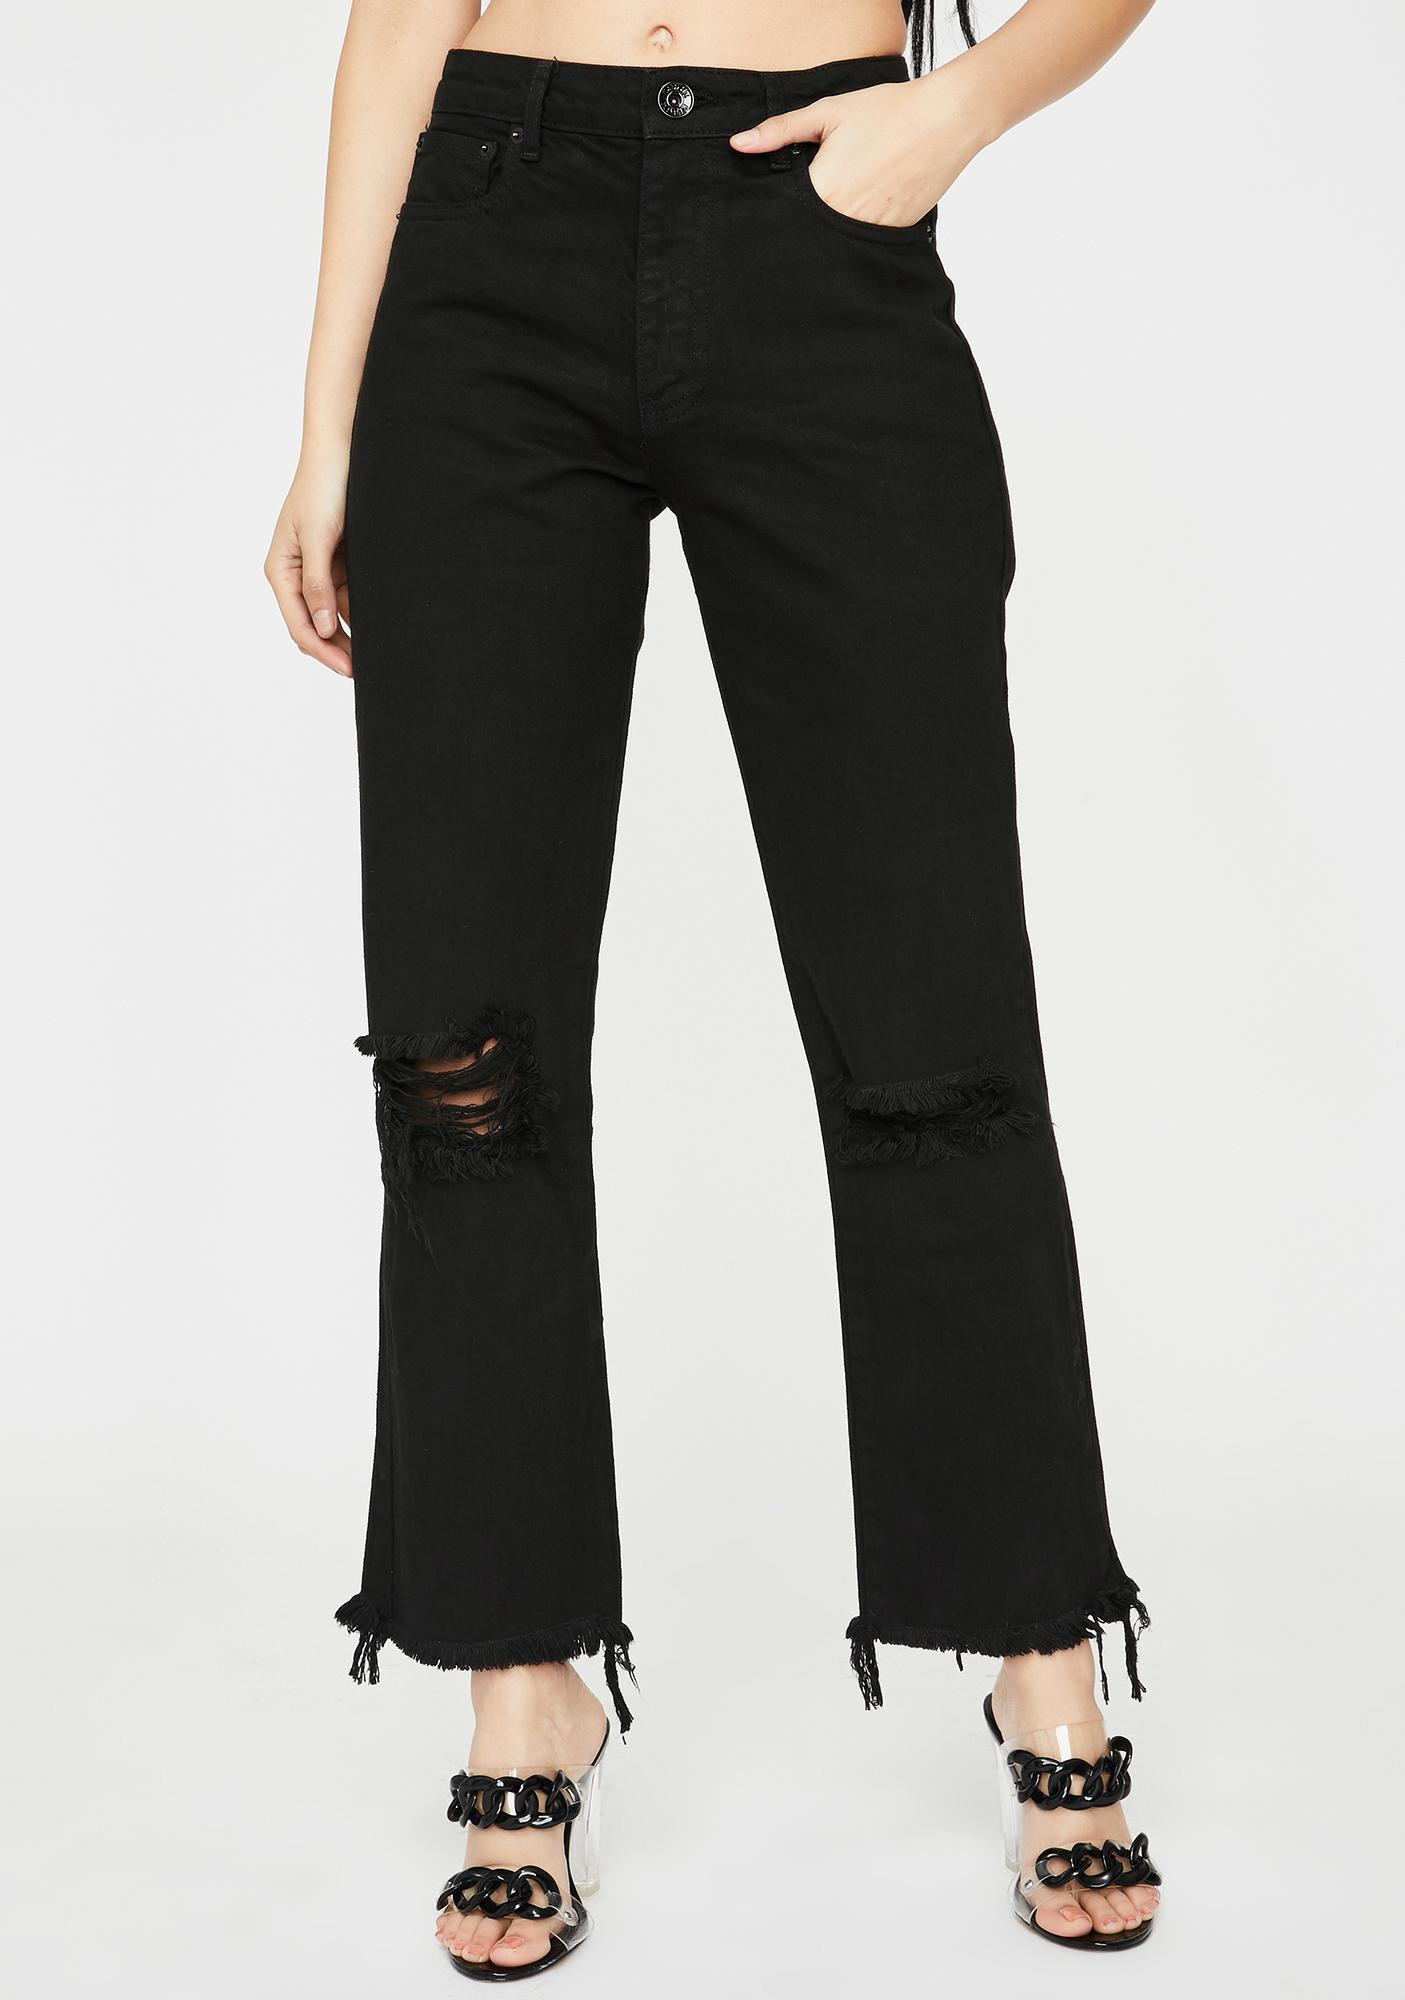 Kiki Riki Get The Picture Distressed Jeans